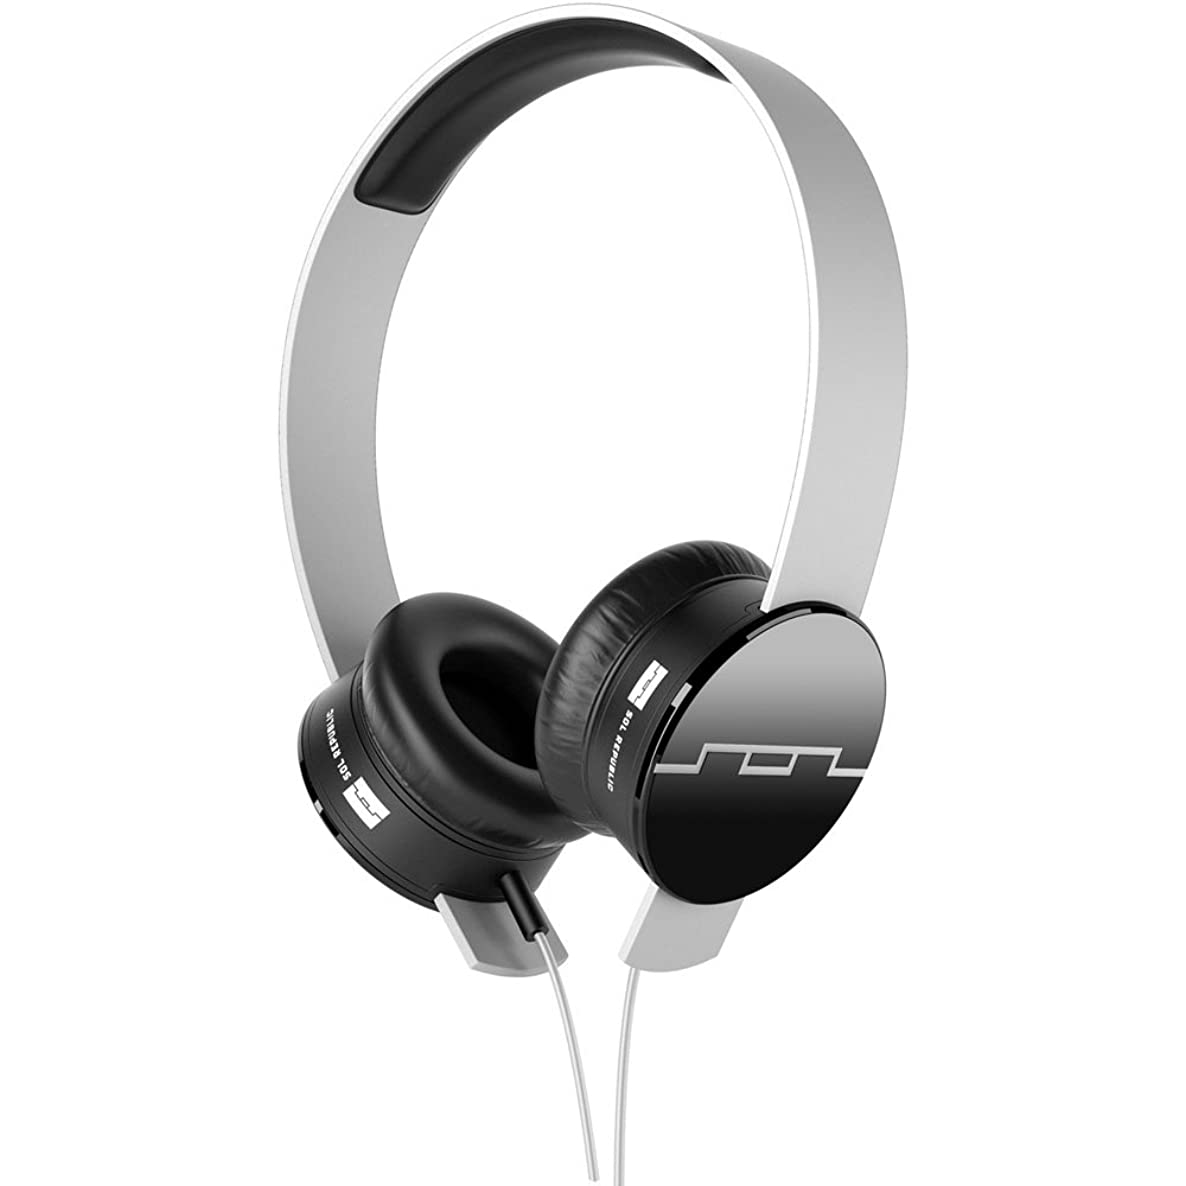 SOL REPUBLIC 1211-02 Tracks On-Ear Interchangeable Headphones with 3-Button Mic and Music Control - White